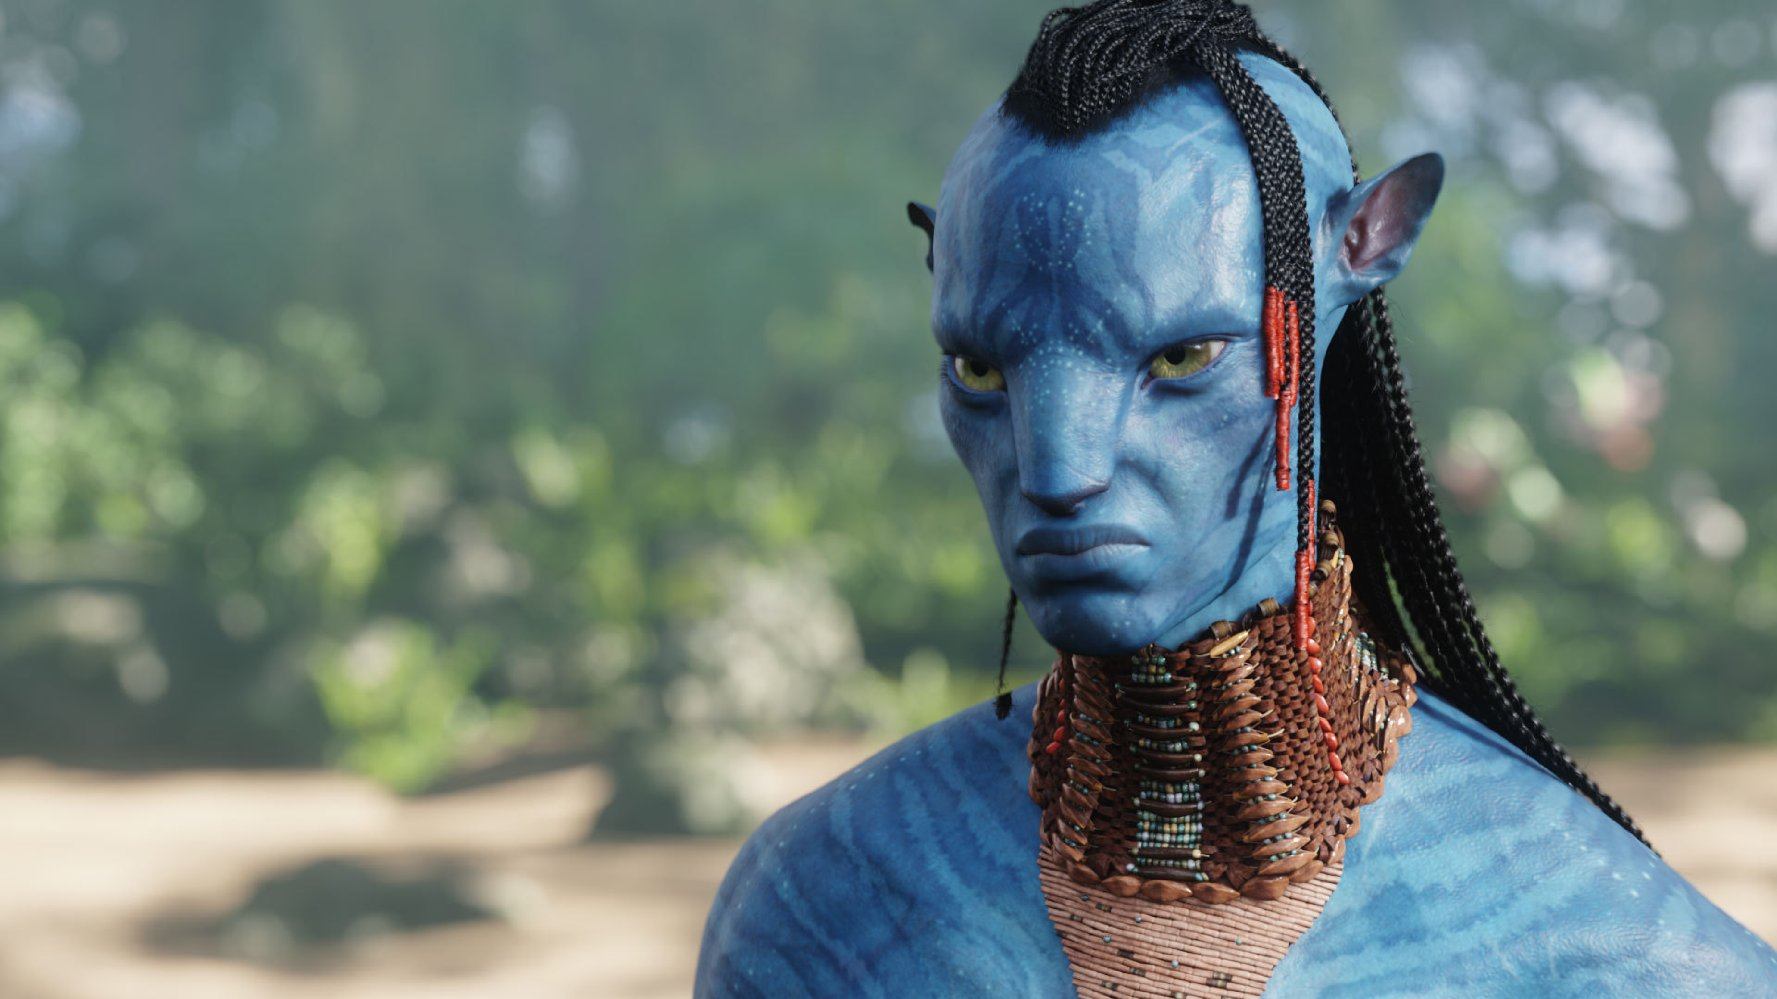 James Cameron Provides Much Needed Update On Avatar Sequels